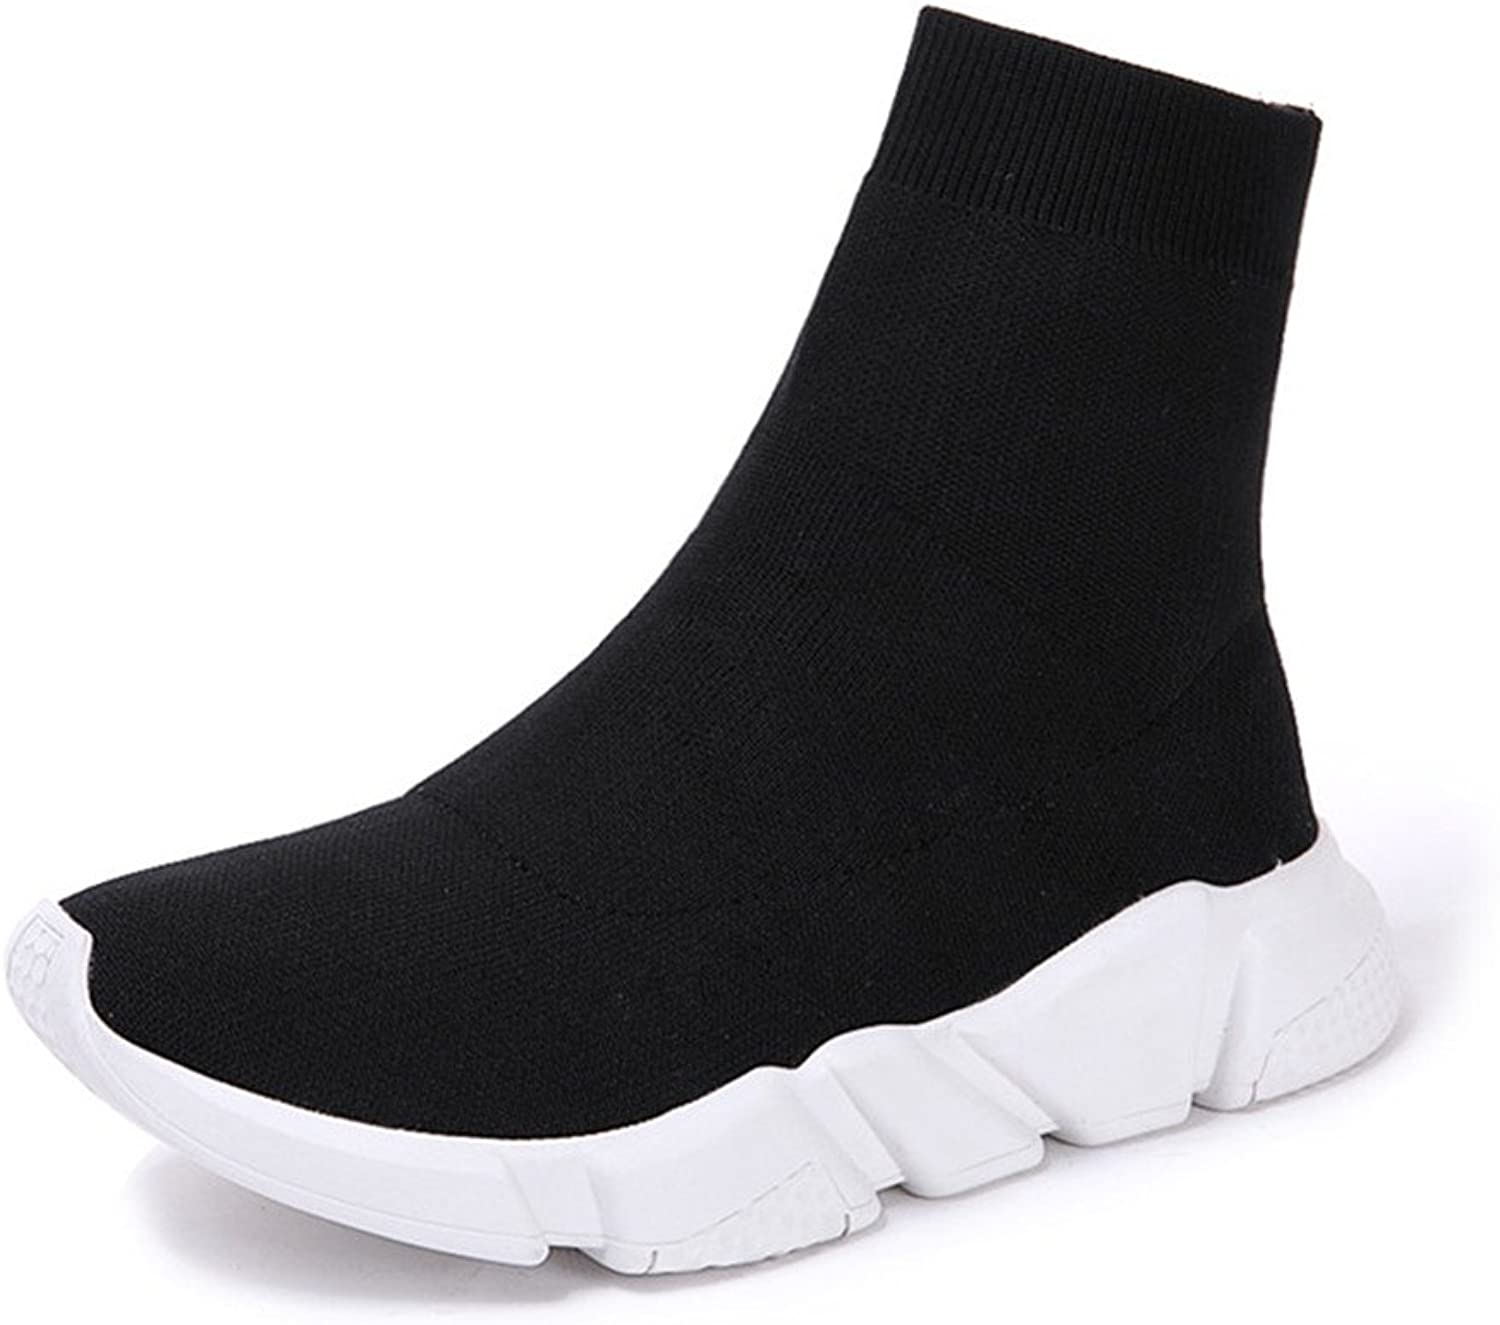 SAMSAY Women's Breathable Lightweight Slip-on Socks Boots Outdoor Casual Sneakers Walking shoes Black